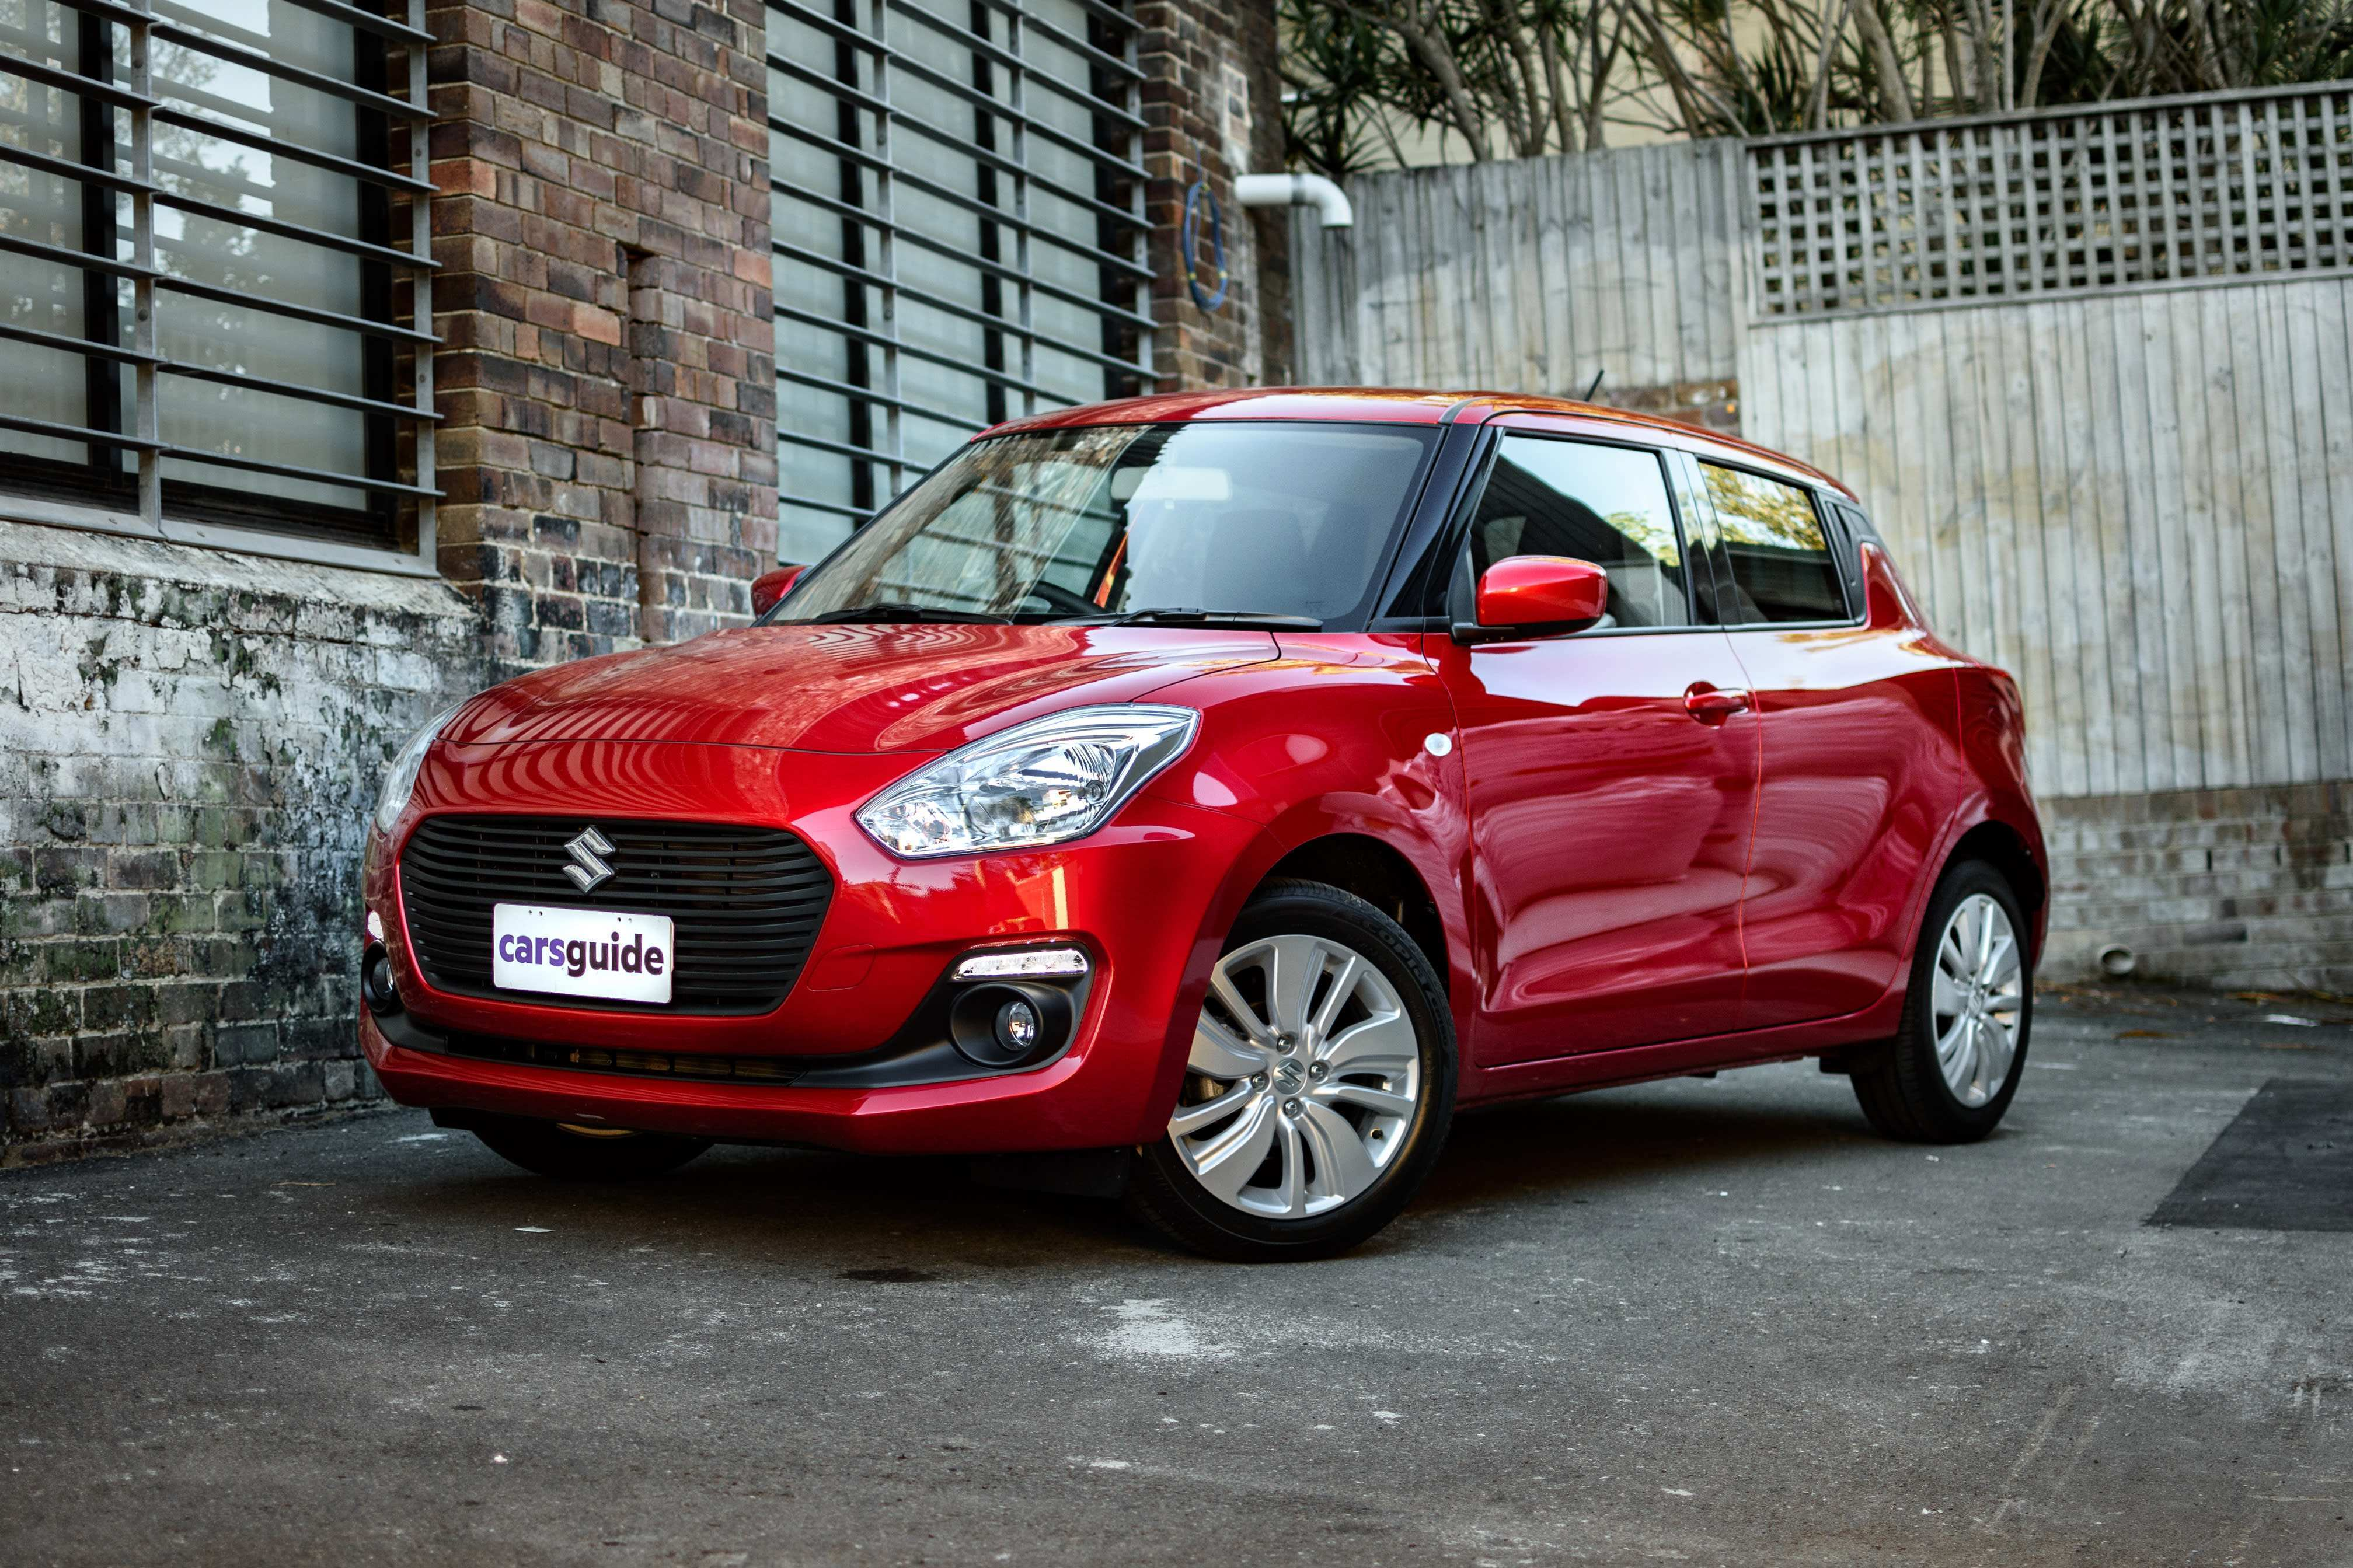 92 New 2019 Suzuki Swift Reviews